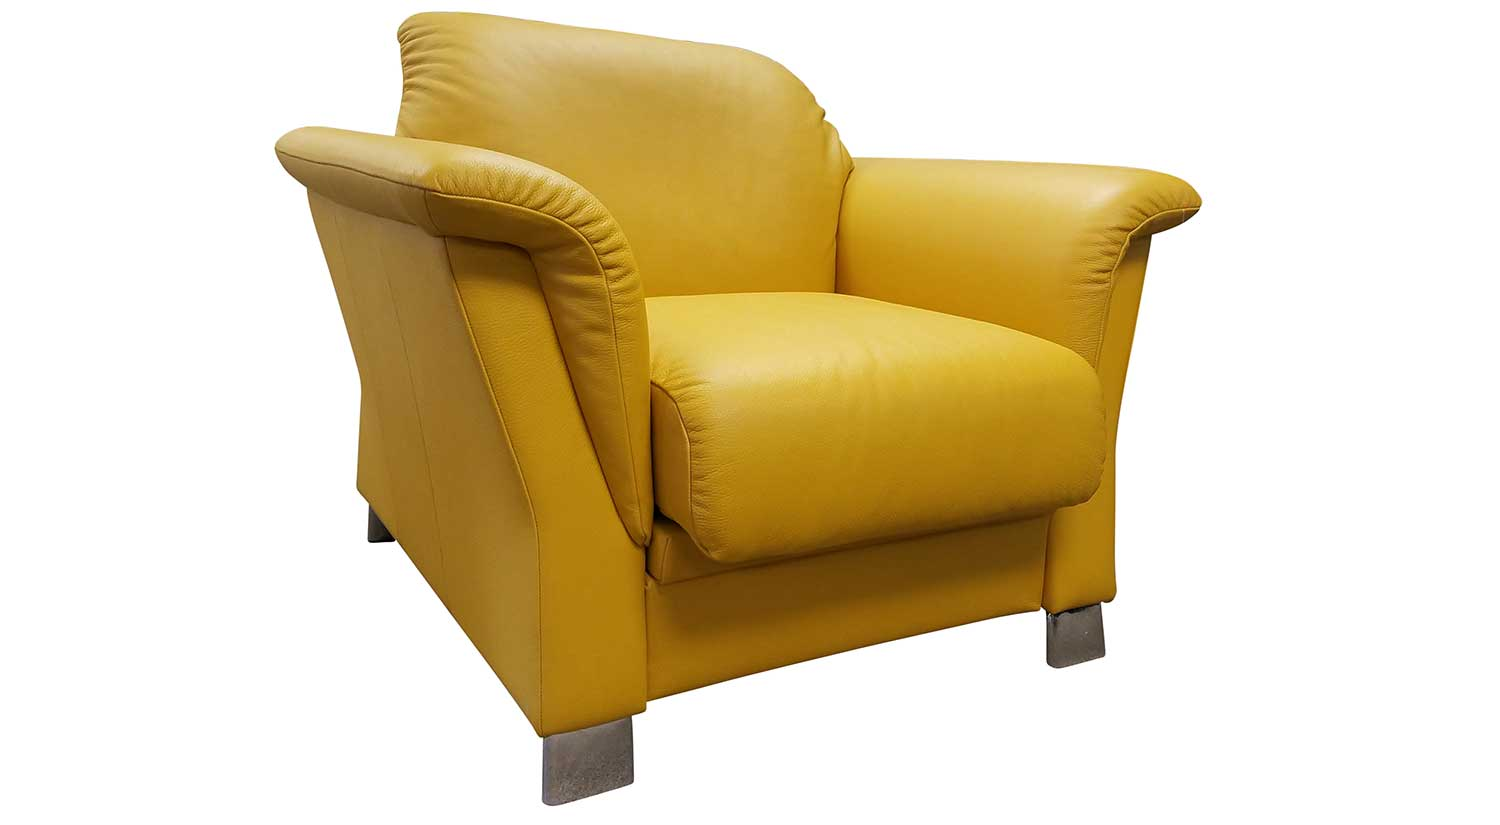 e40 chair in mustard circle furniture   e40 chair in mustard  rh   circlefurniture